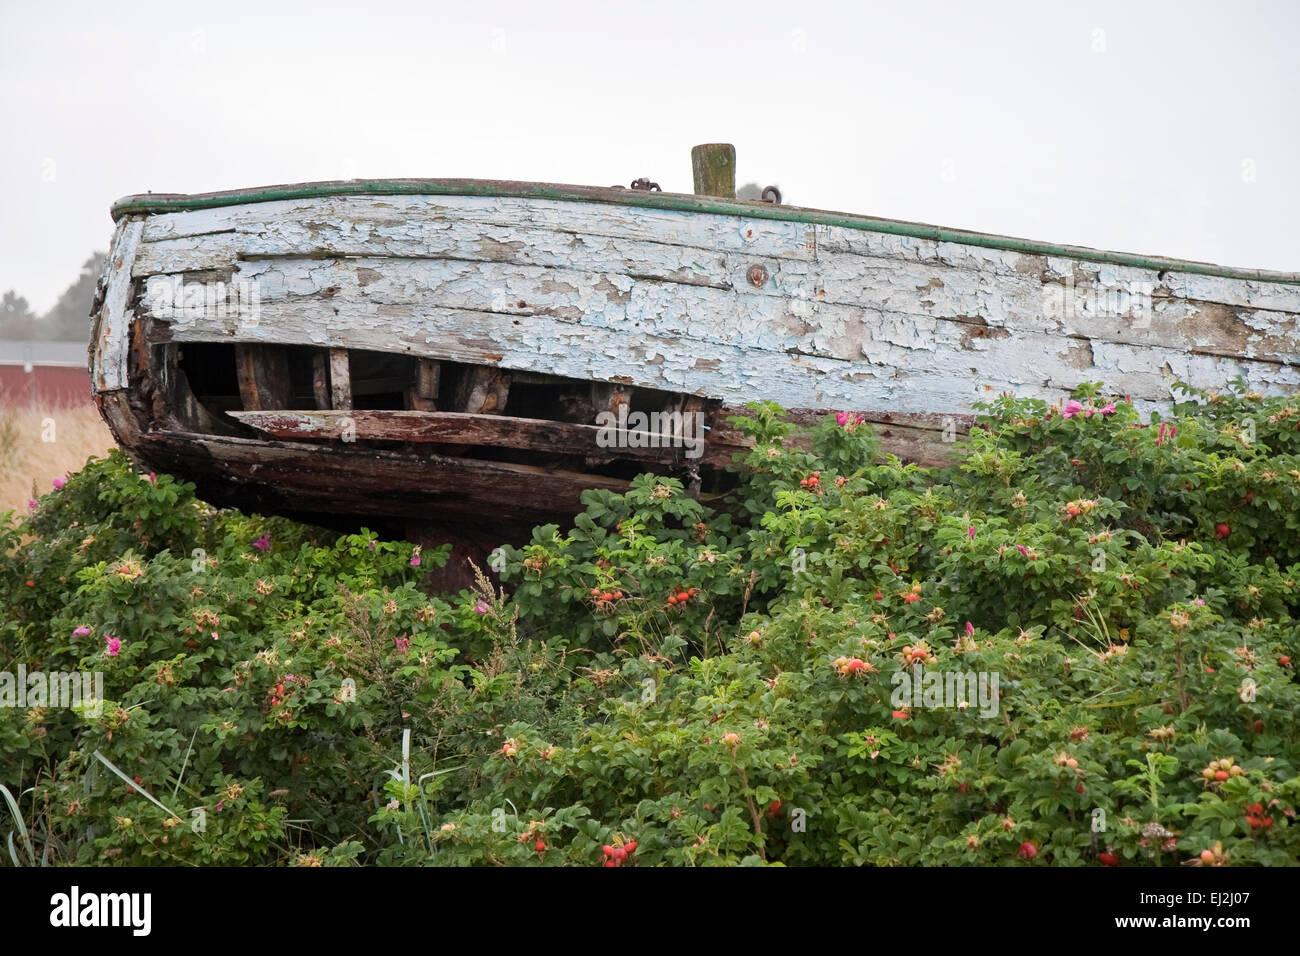 Obsolete boat parked in dog roses. Copy space - Stock Image